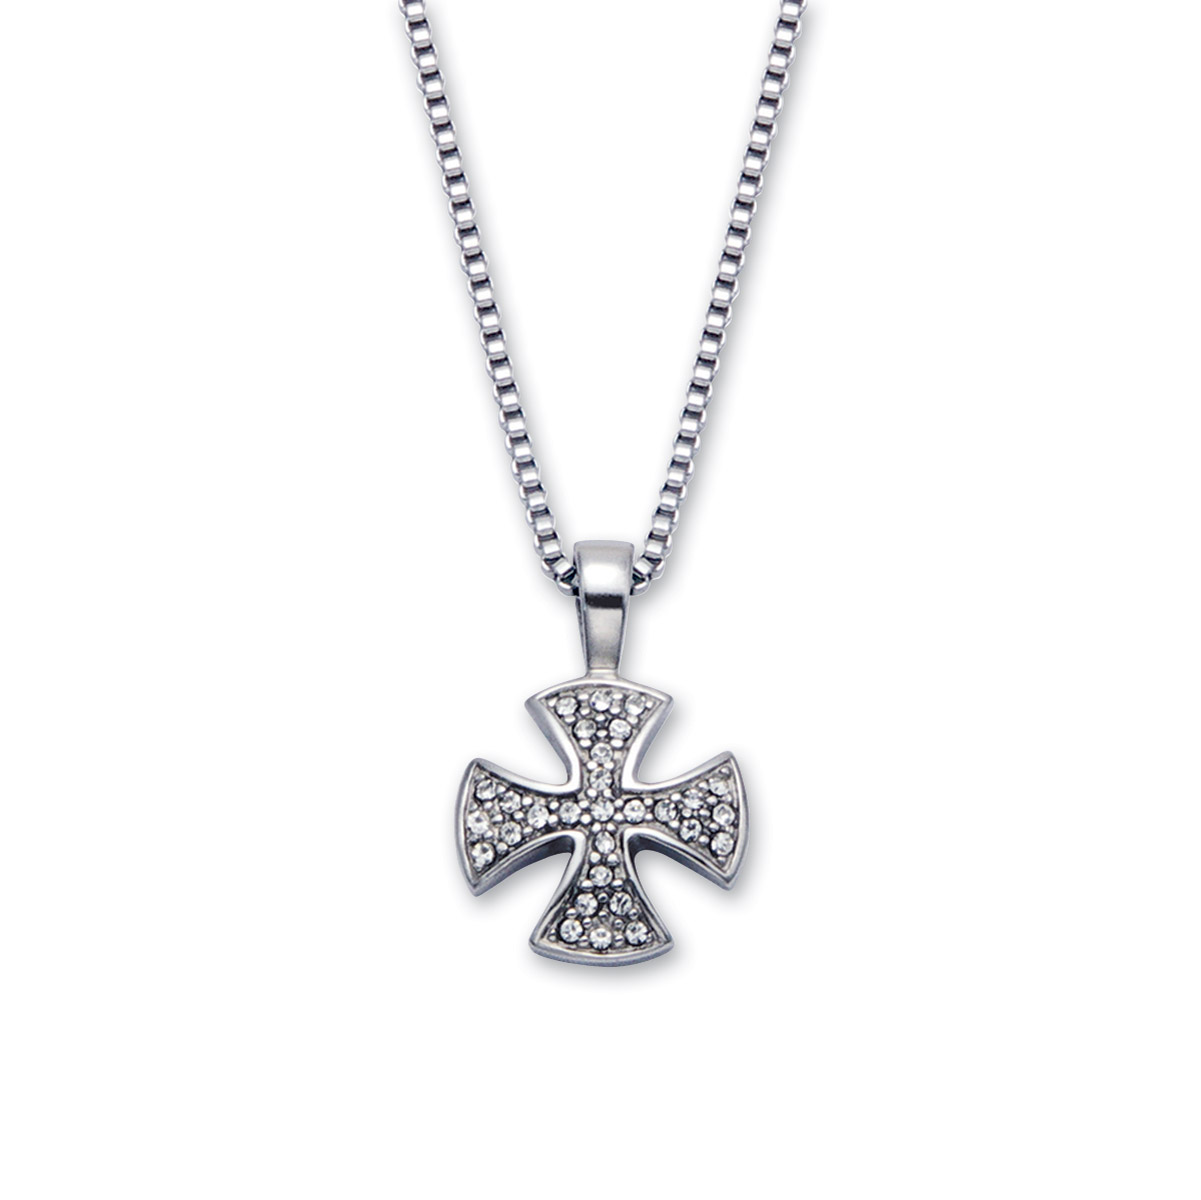 Wildthings Stainless Steel Necklace Rhinestone Cross with 20″ Chain